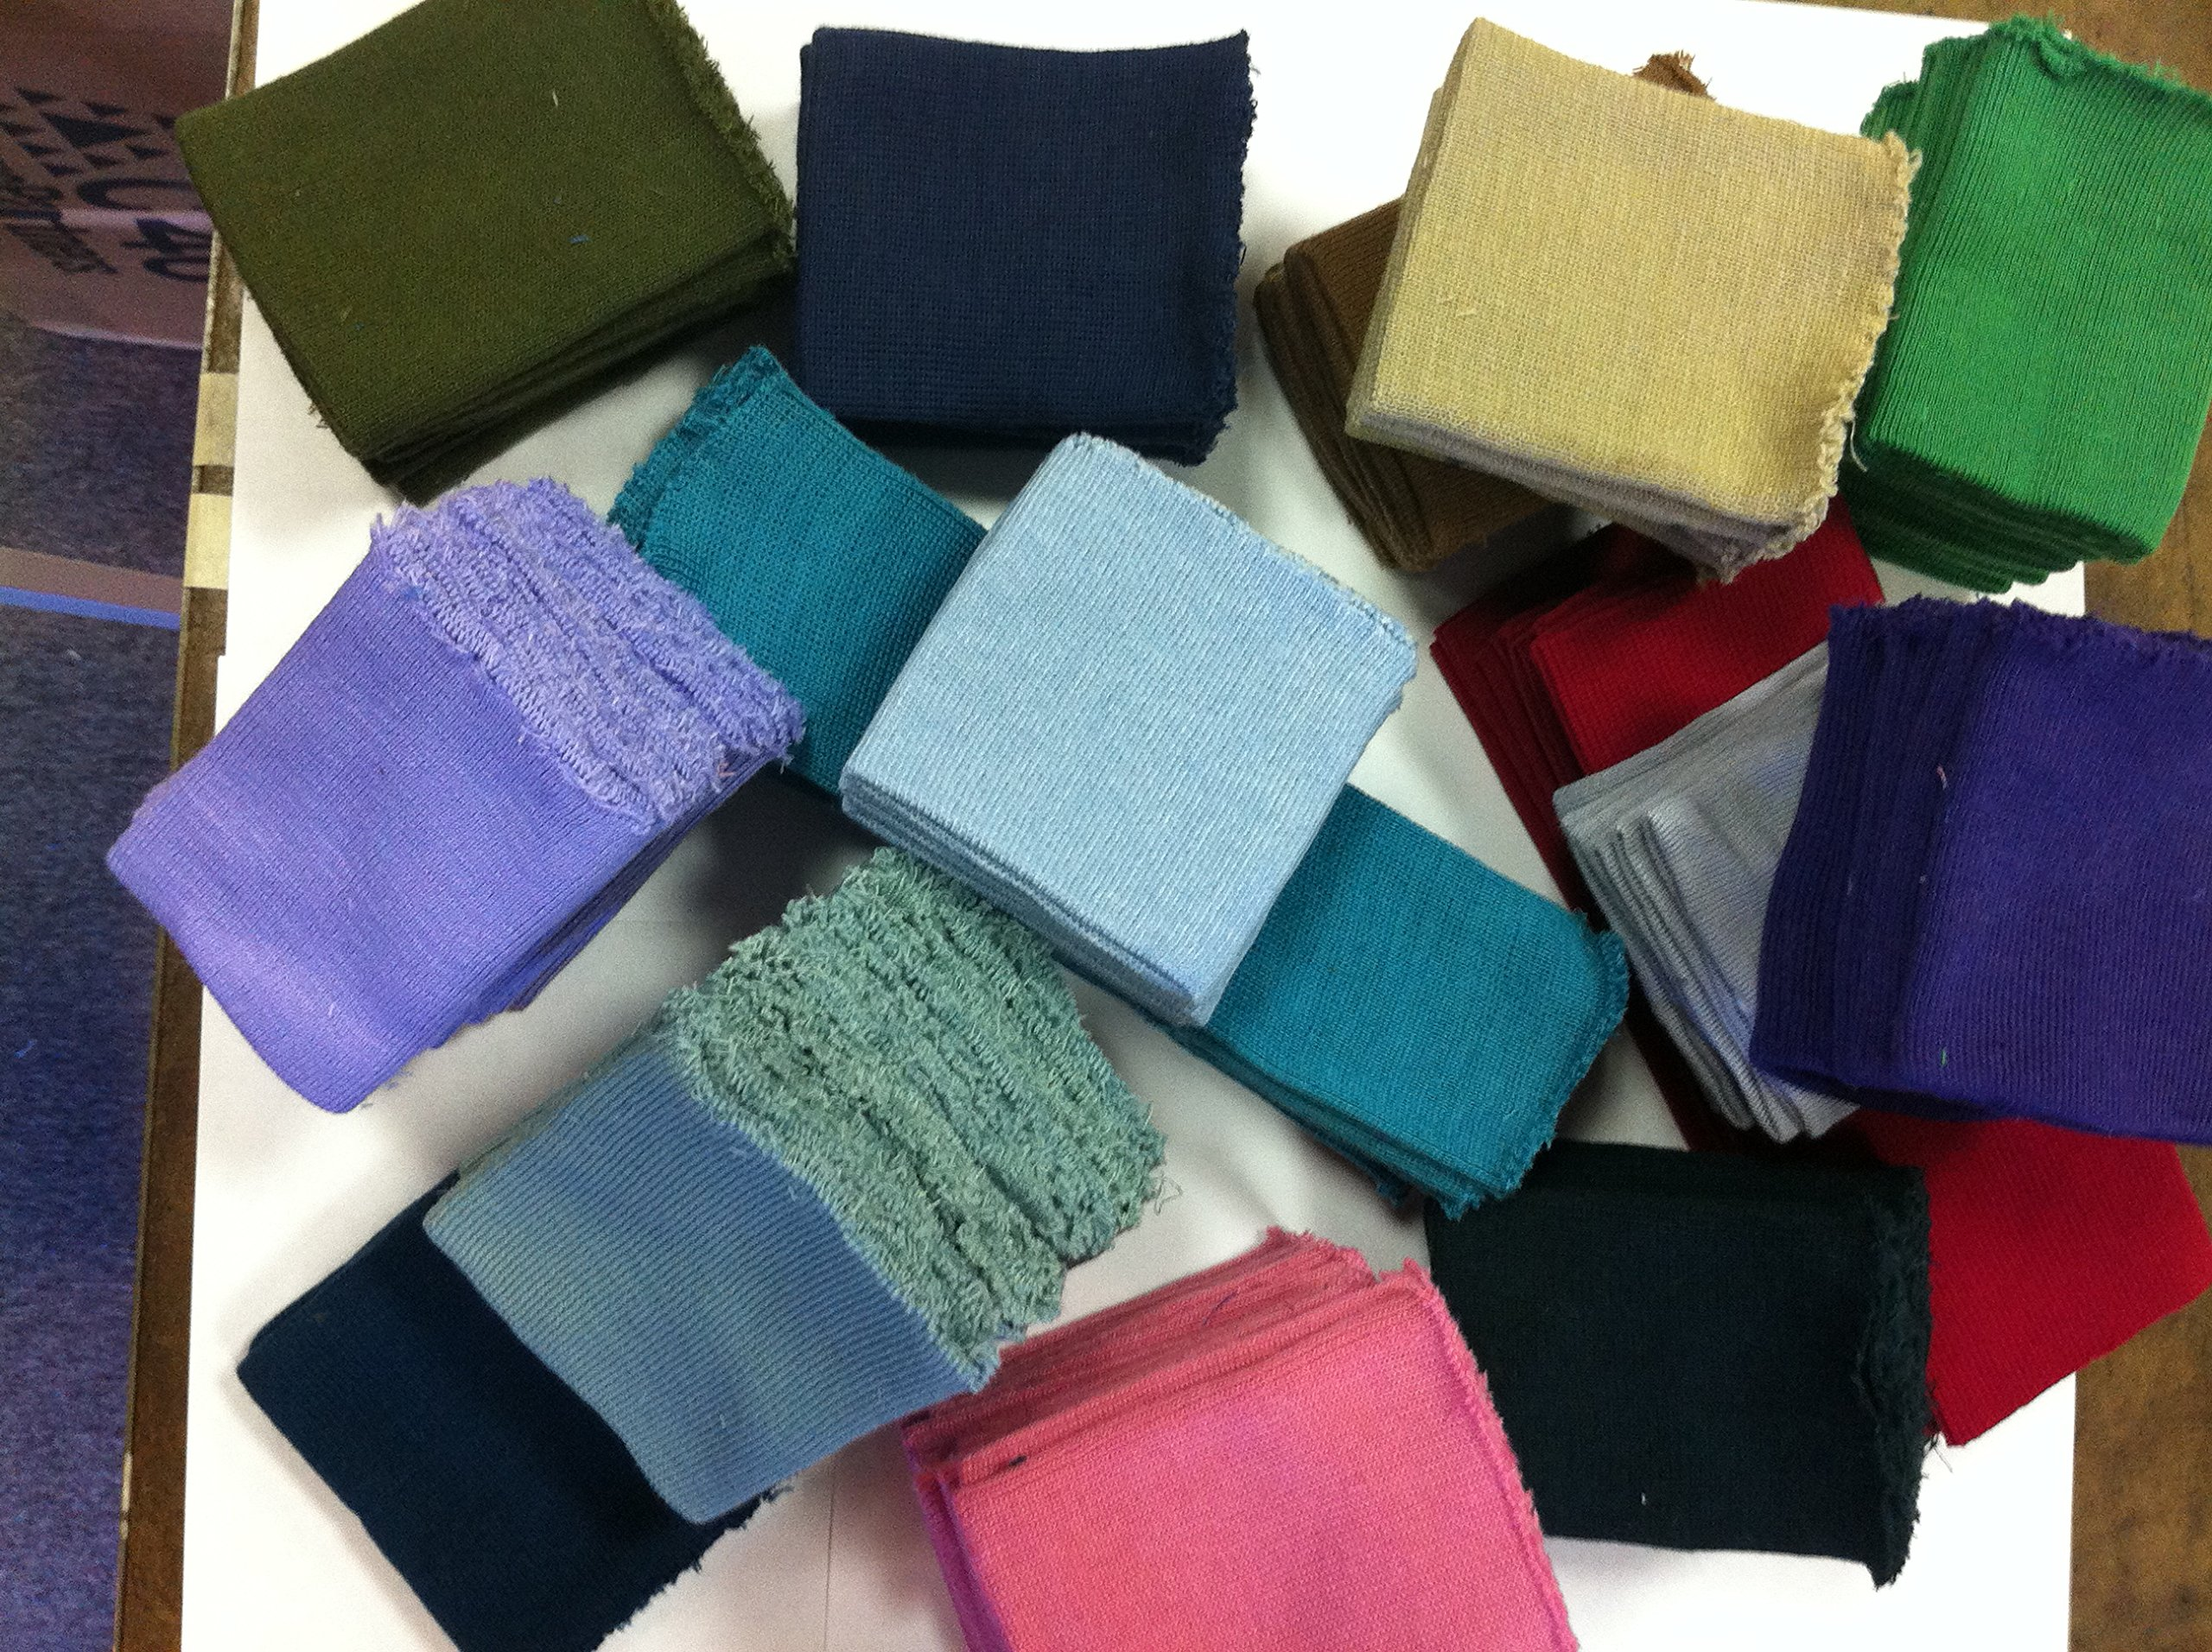 36da24fd060 Get Quotations · Knit/knitted Cuff, Rib Knit Fabric Cuff Assorted Colors -  Material for Making Cuffs